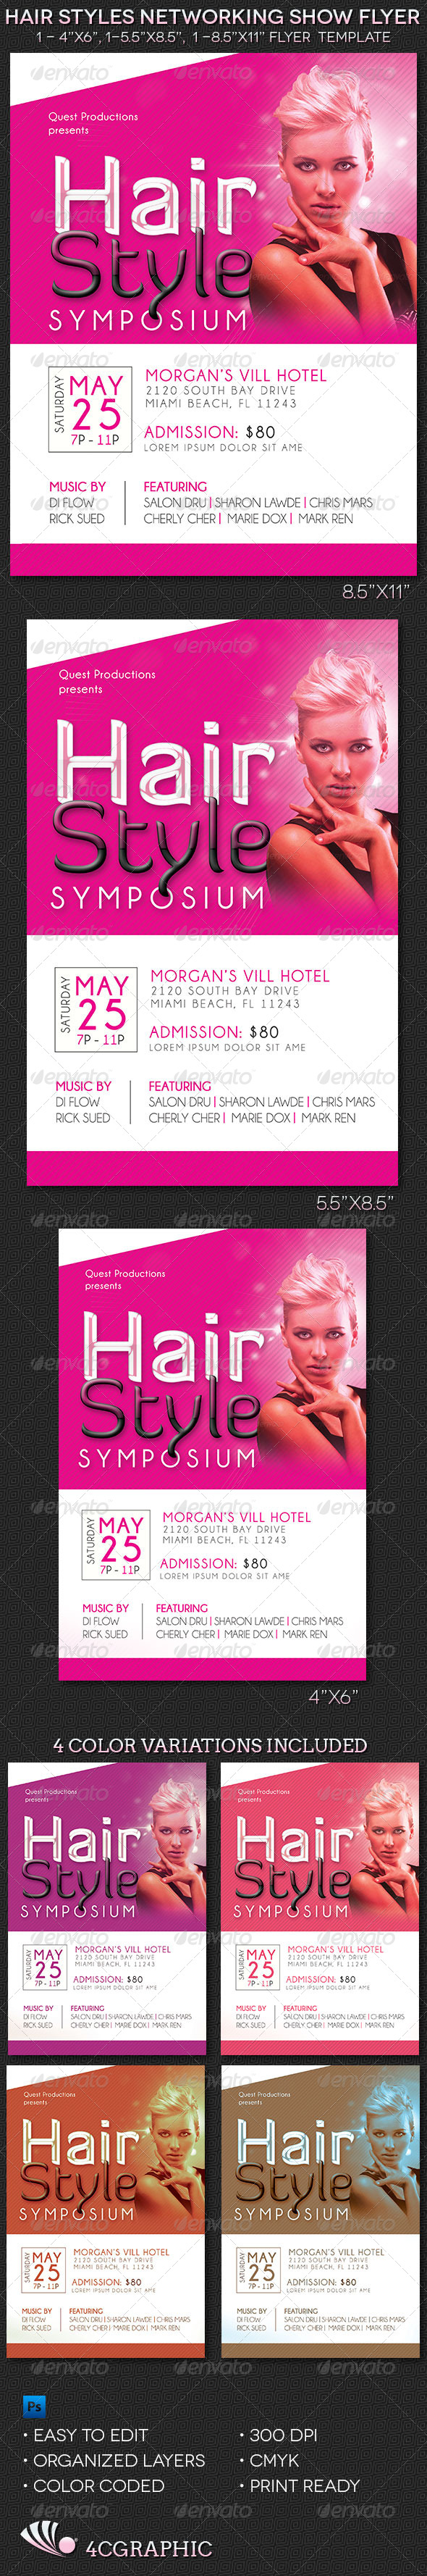 GraphicRiver Hair Styles Networking Show Flyer Template 8198855